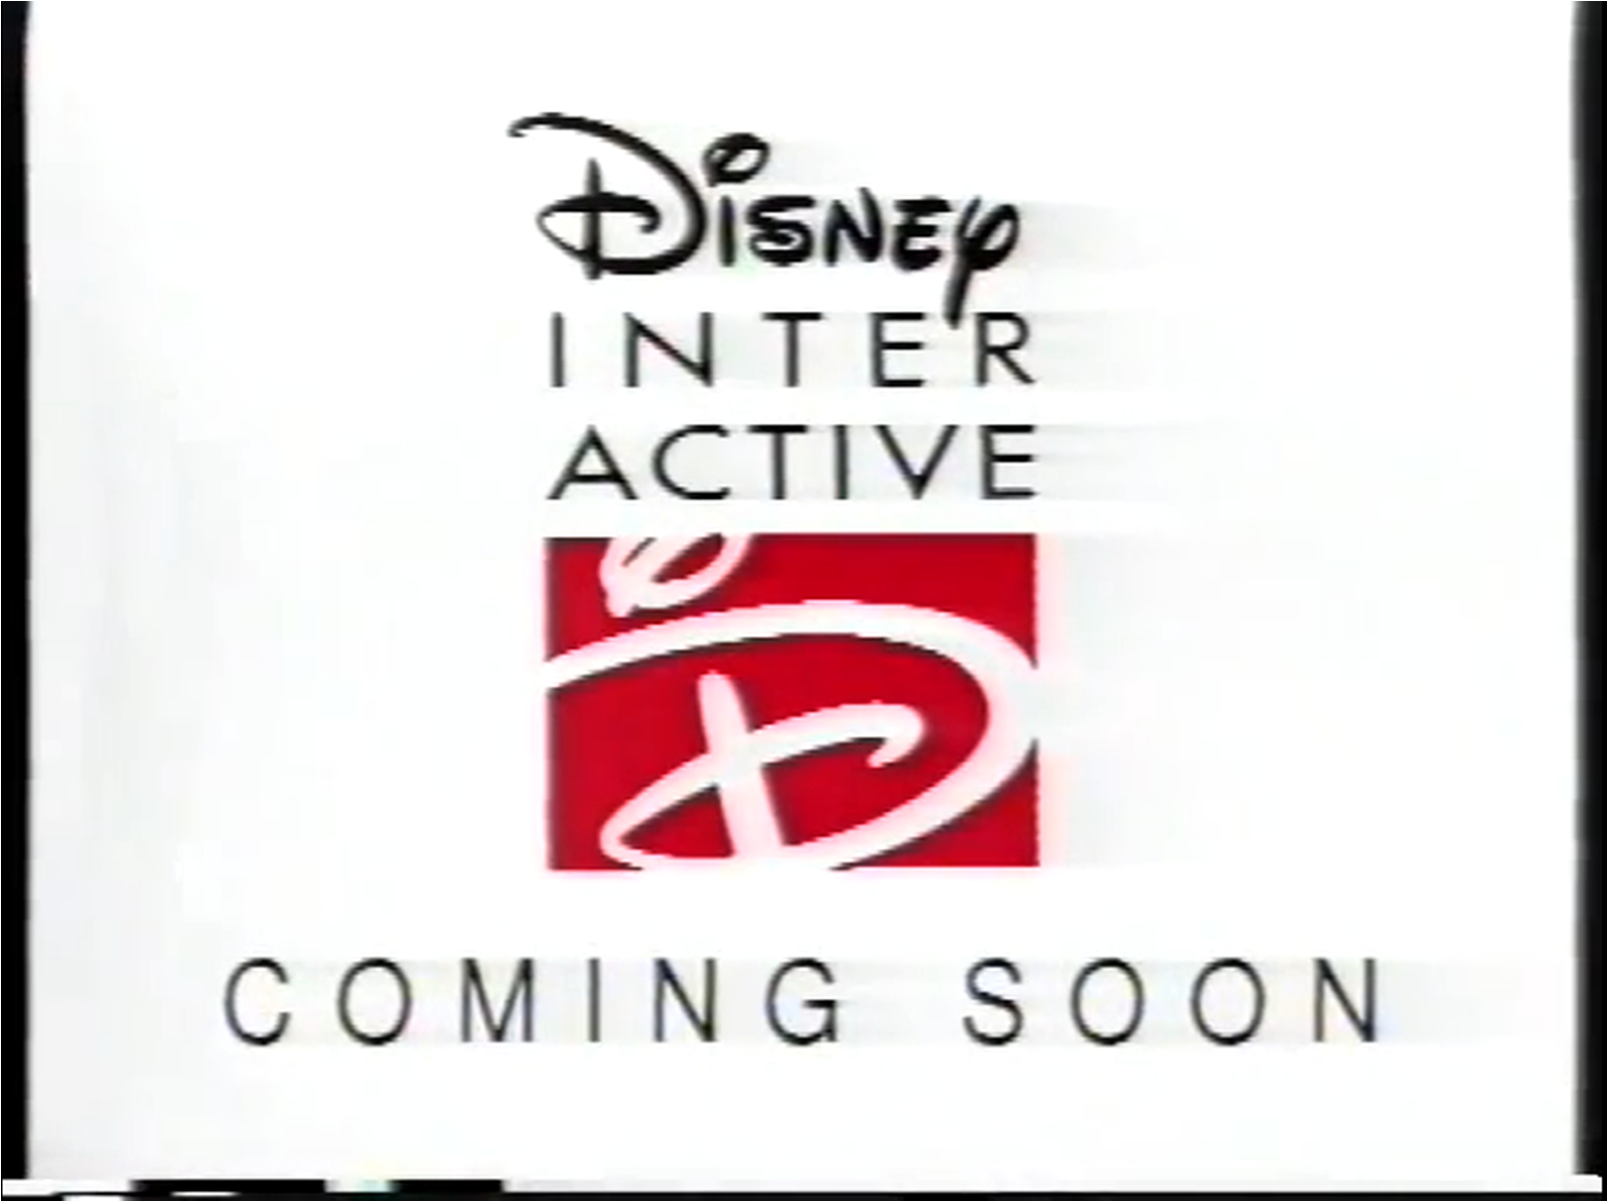 disney interactive logo 2001 - photo #19